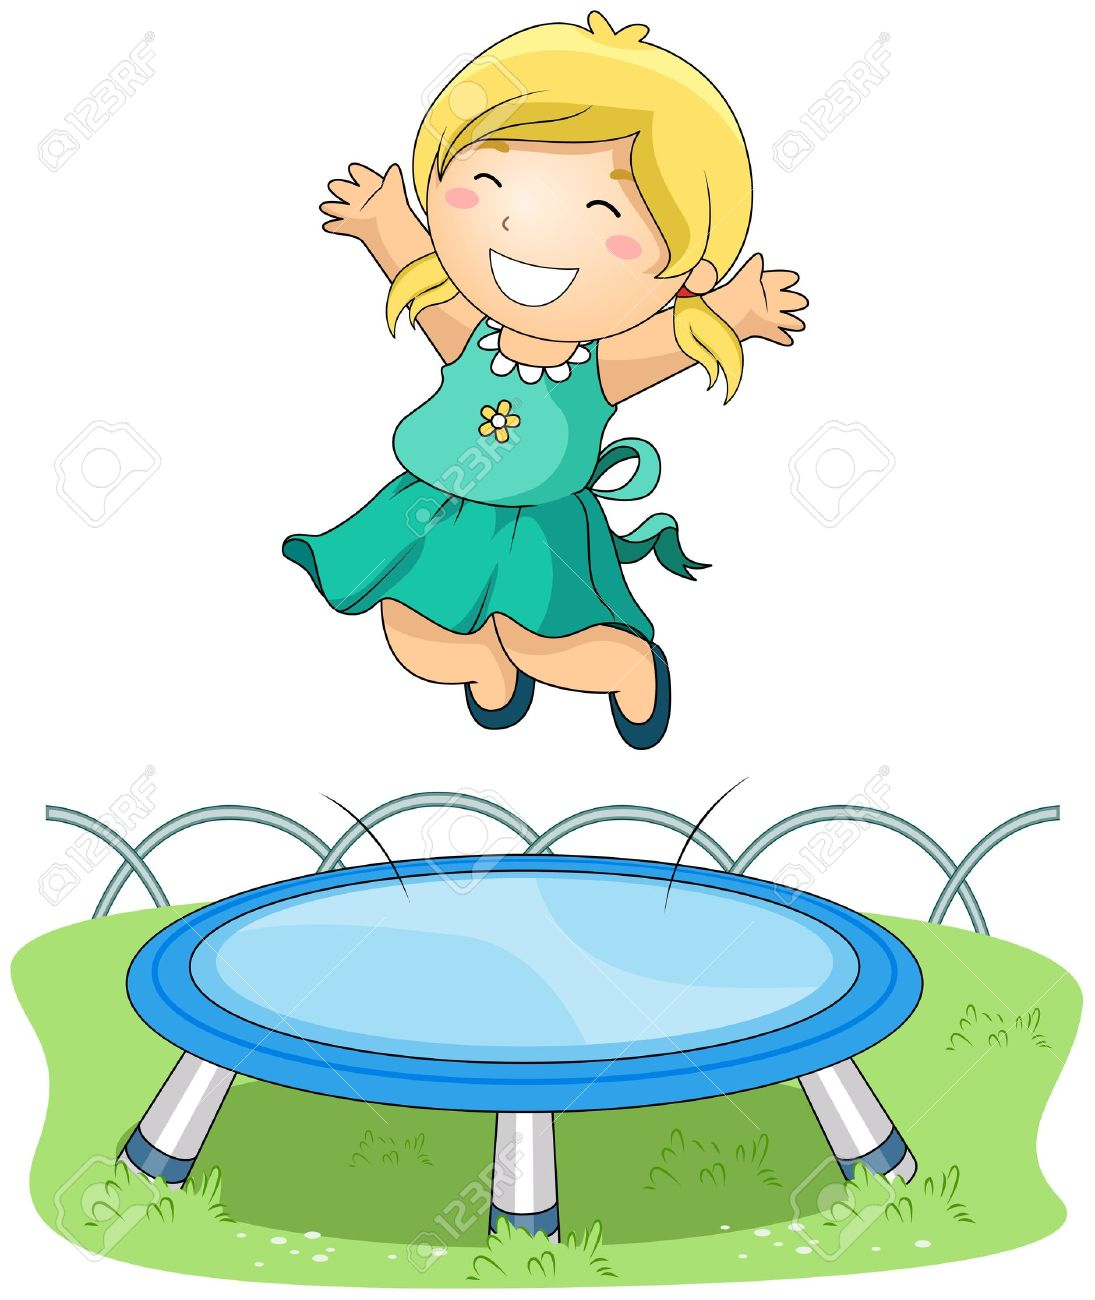 freeuse download Boy and girl jumping. Jump clipart